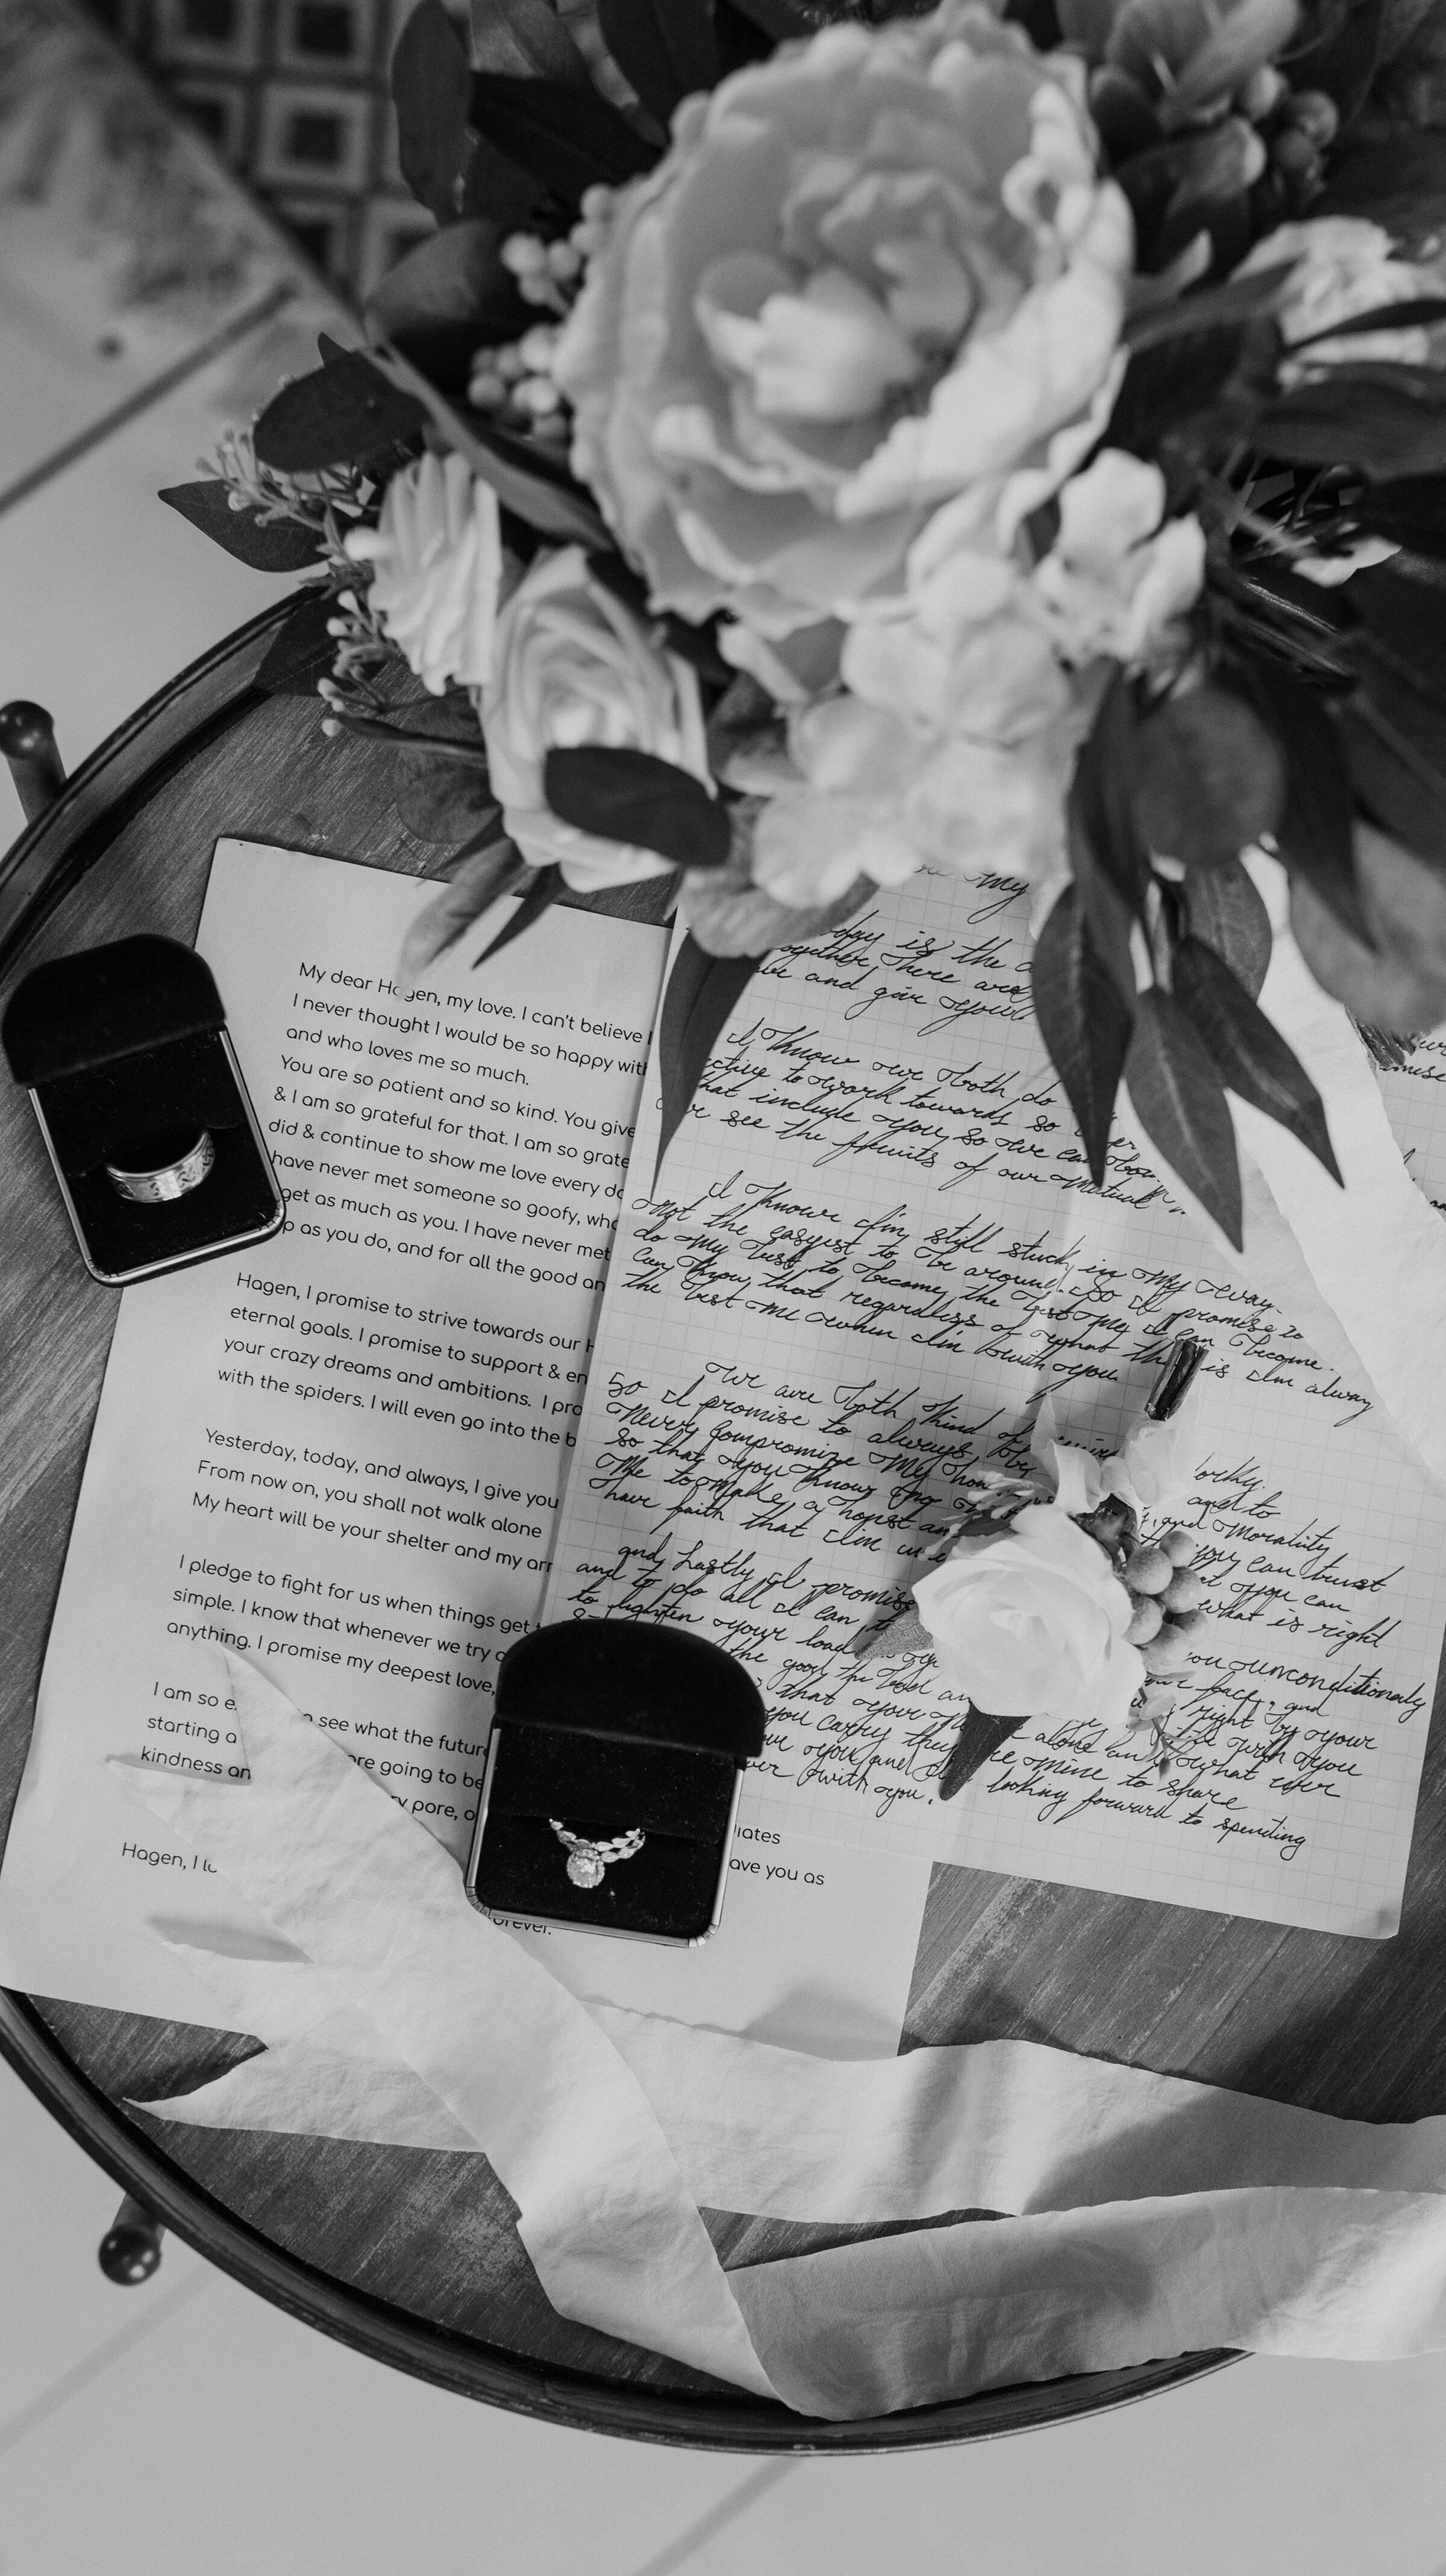 Wedding day details photographed by Kristy Alyse Photography including the wedding program, the bride's wedding ring and the flowers from her bouquet. photoshoot in Ephraim Utah photography wedding outdoor location western inspired rustic Airbnb photo aesthetic #ephraimutah #utahphotography #weddingdayphotography #gettingmarried #rusticwedding #utahwedding #westernstyle #weddingphotoshoot